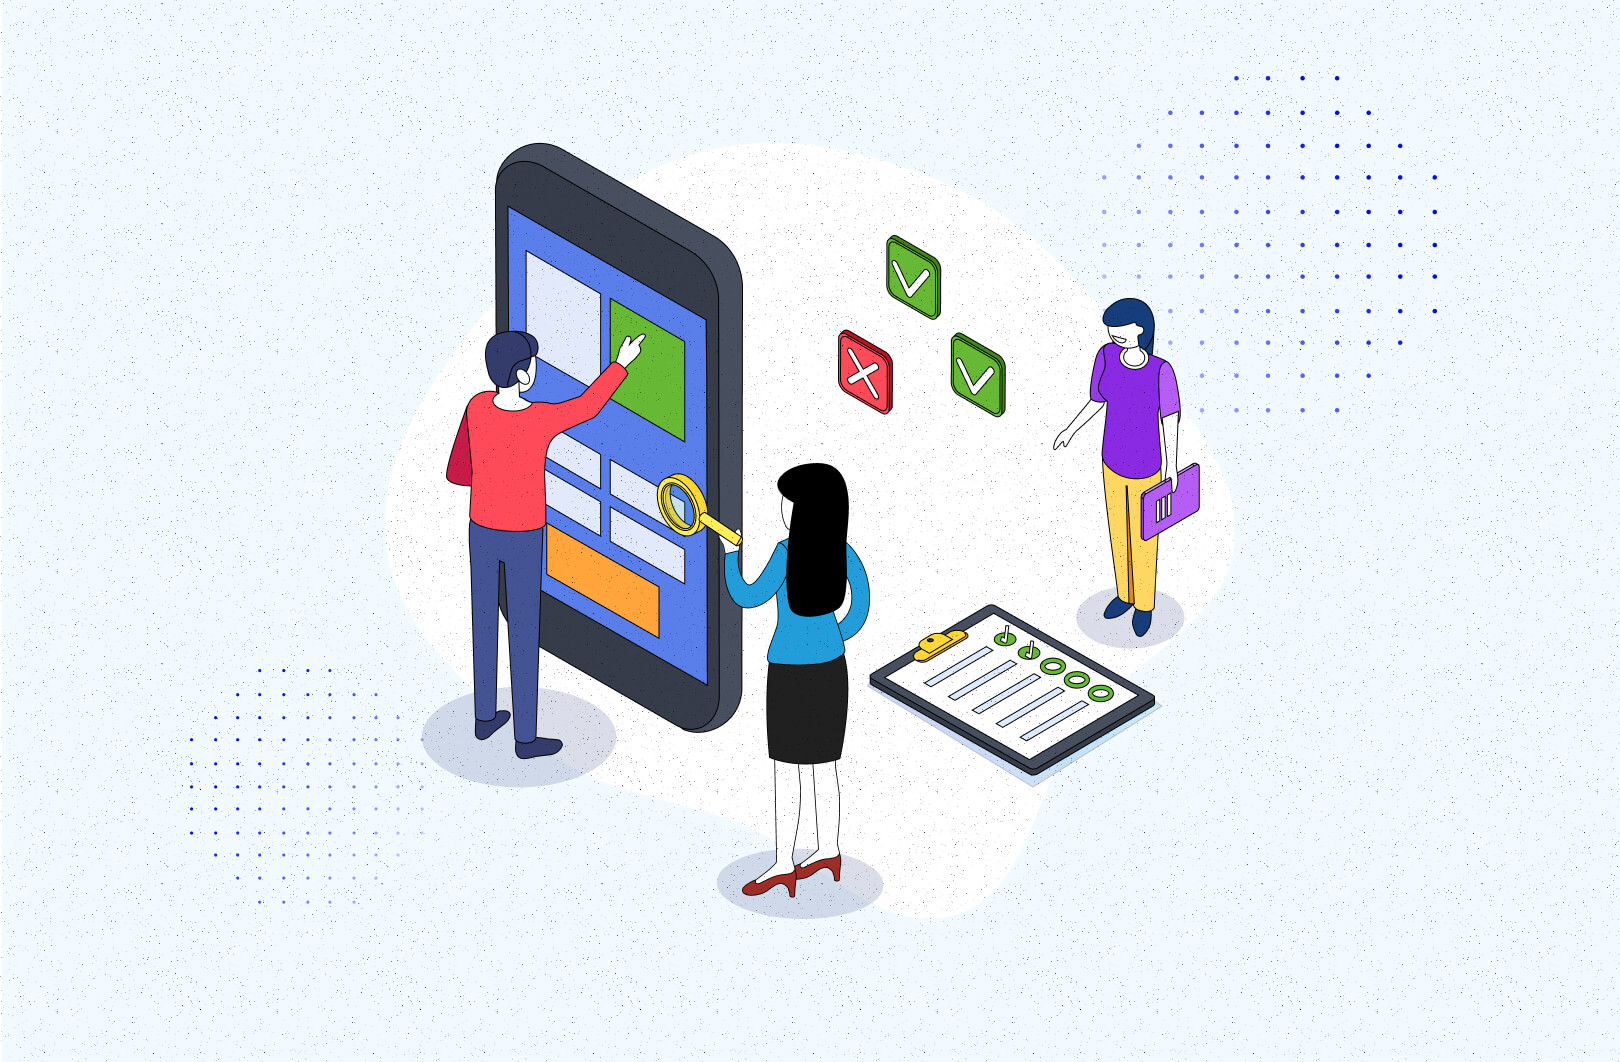 Easy-to-understand usability testing examples for improving software product quality and user satisfaction